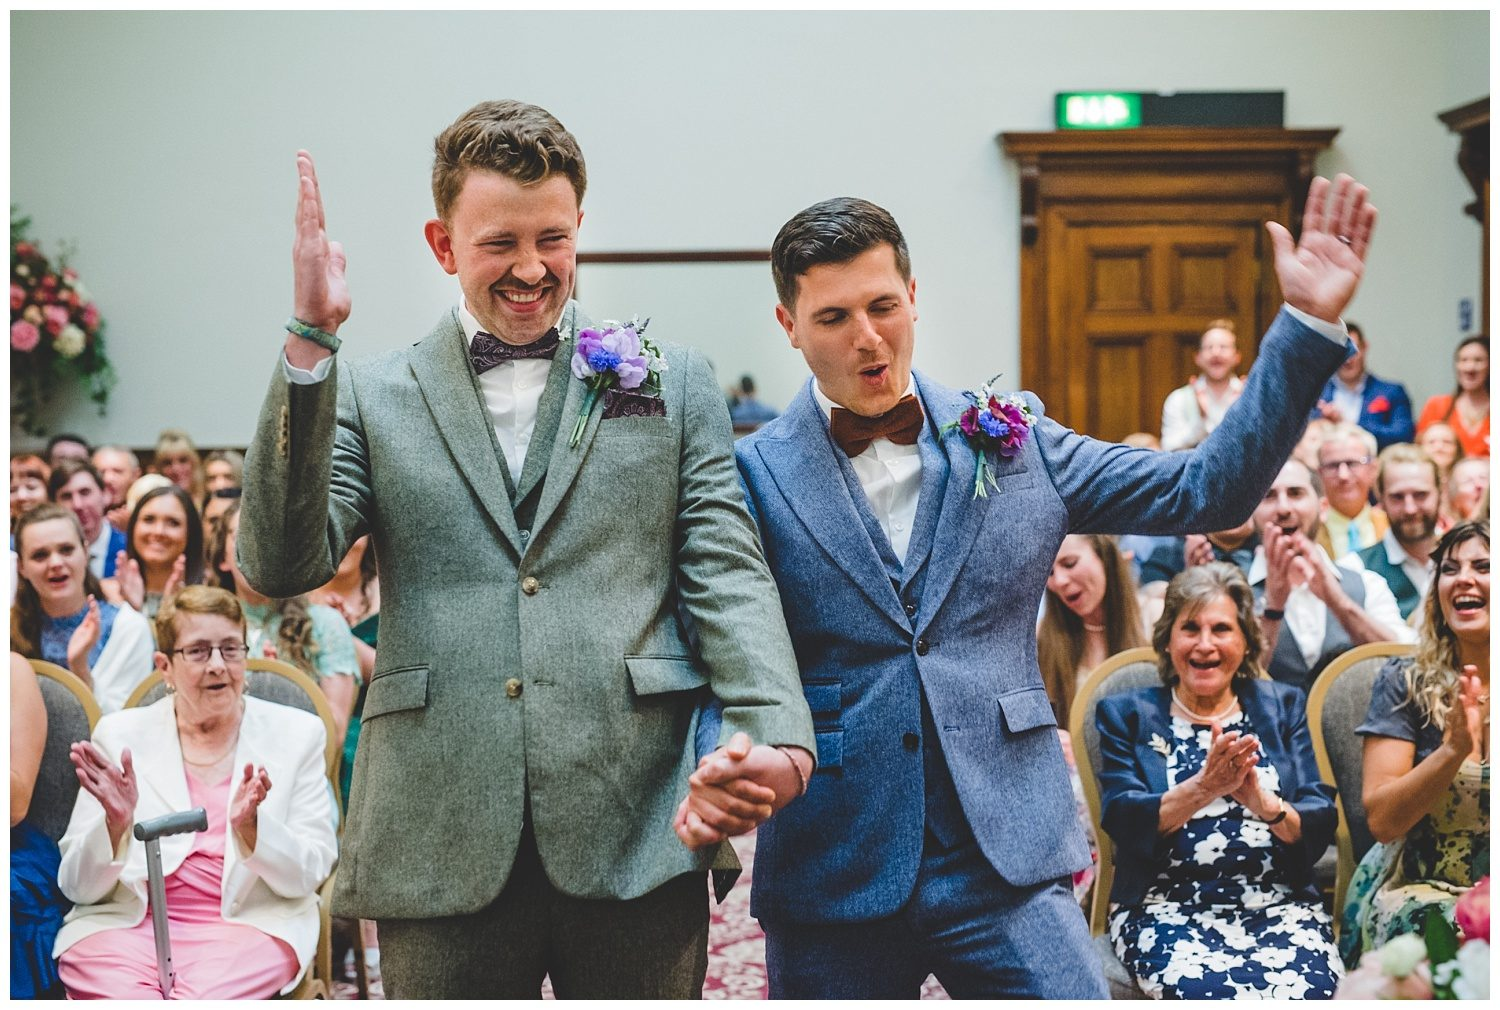 A colourful and fun gay wedding in Liverpool